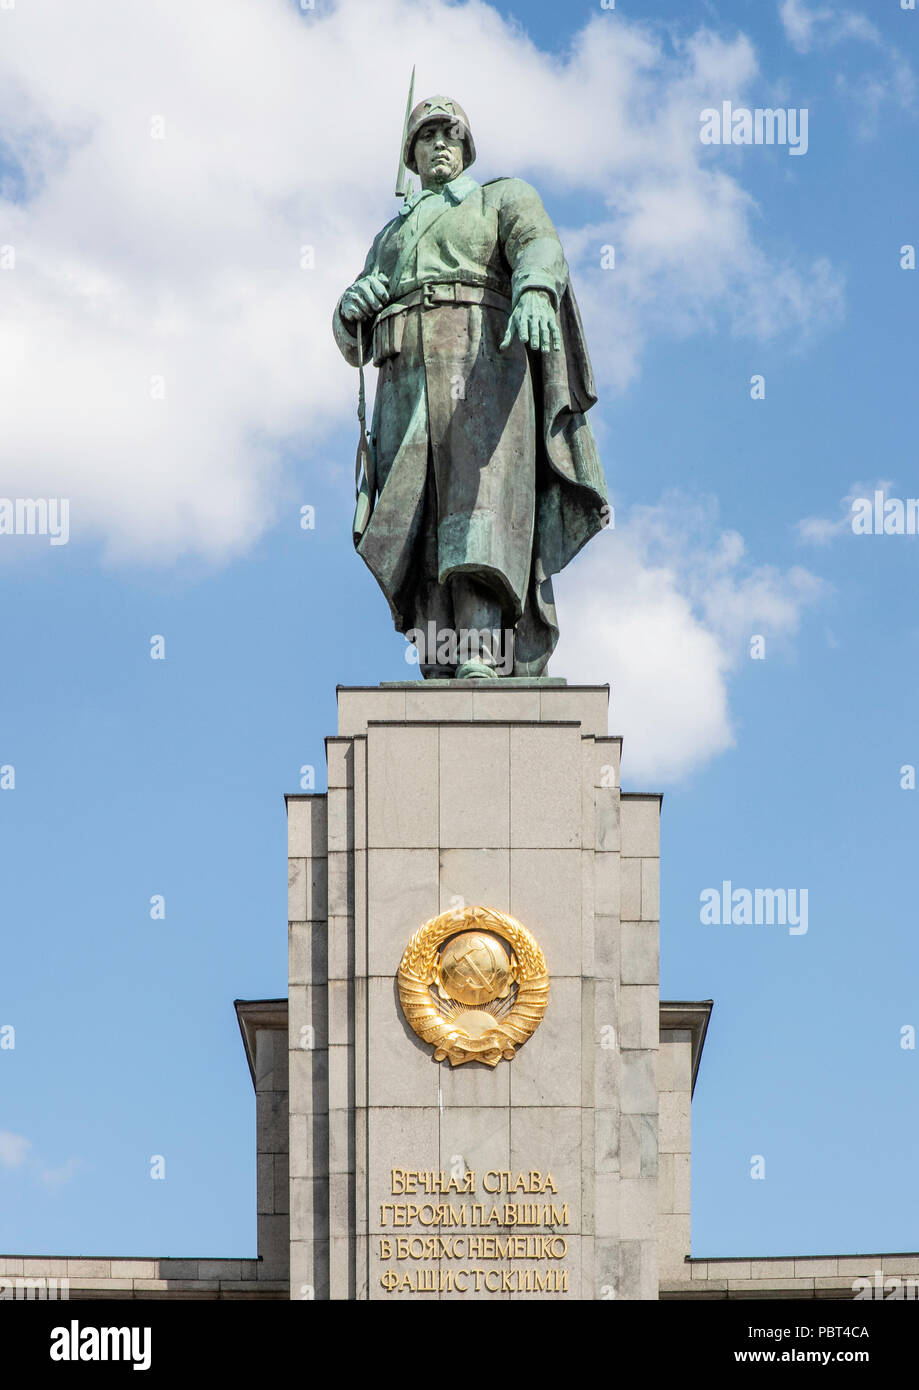 Soviet War Memorial, Tiergarten, Berlin, Germany - Stock Image